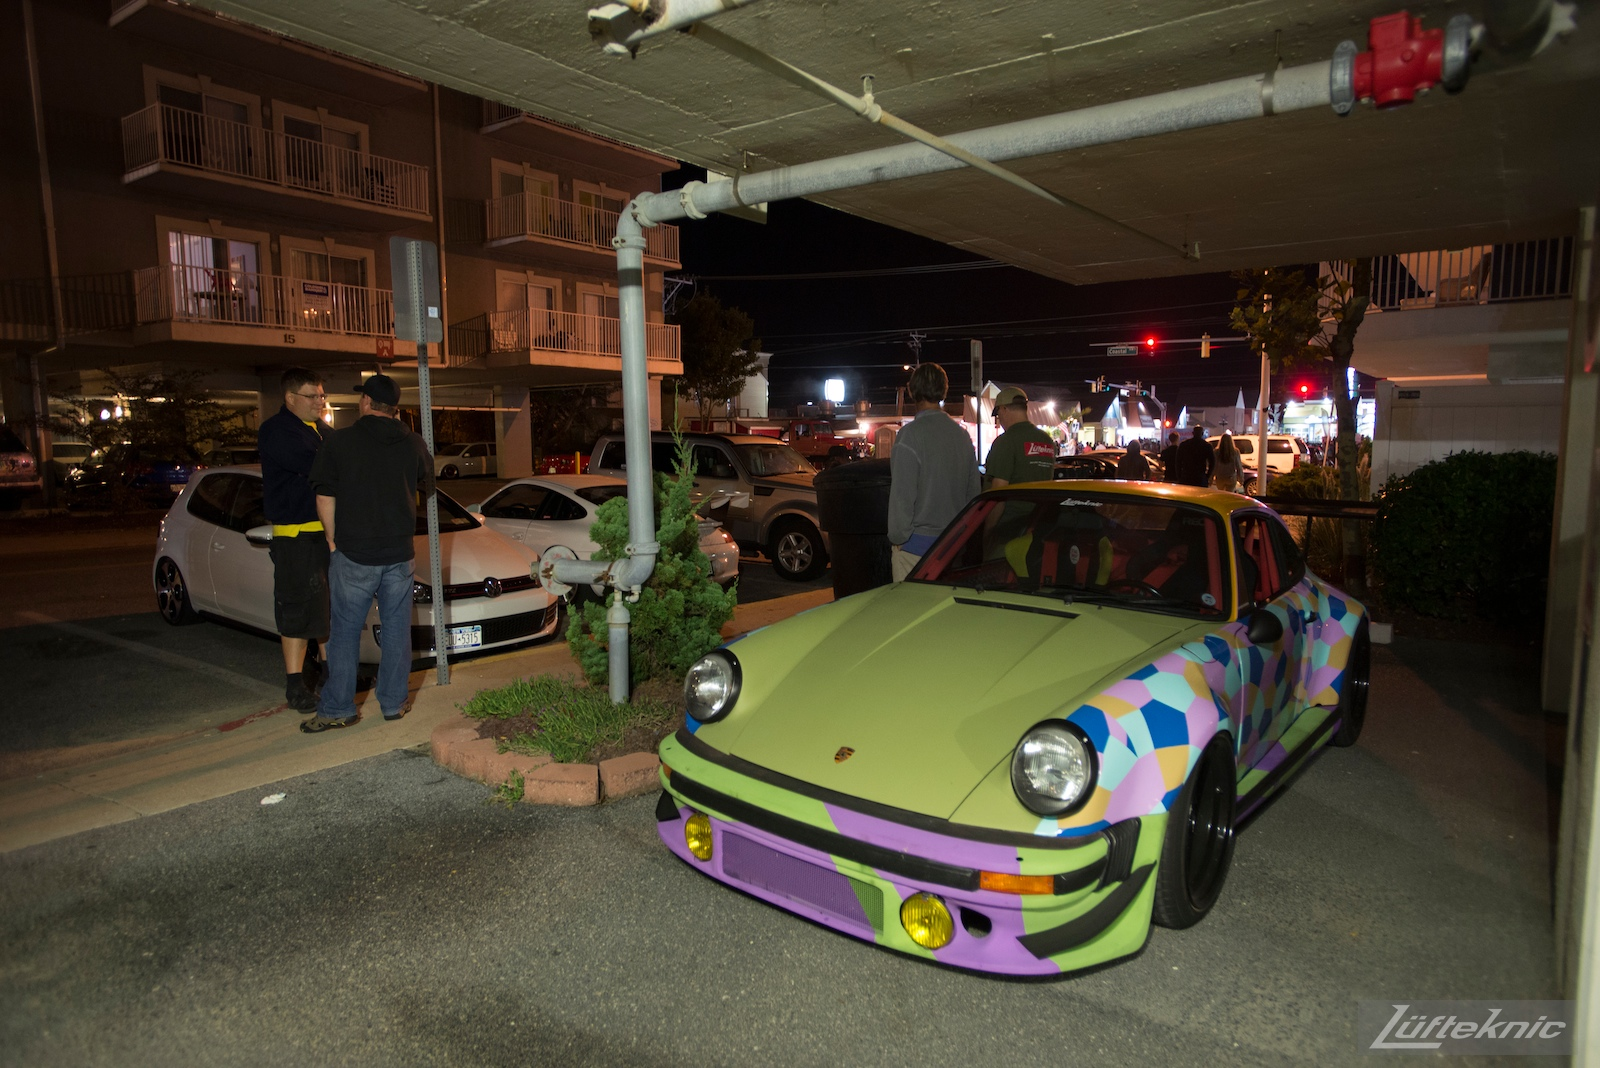 Lüfteknic #projectstuka Porsche 930 Turbo at night with crowds talking.